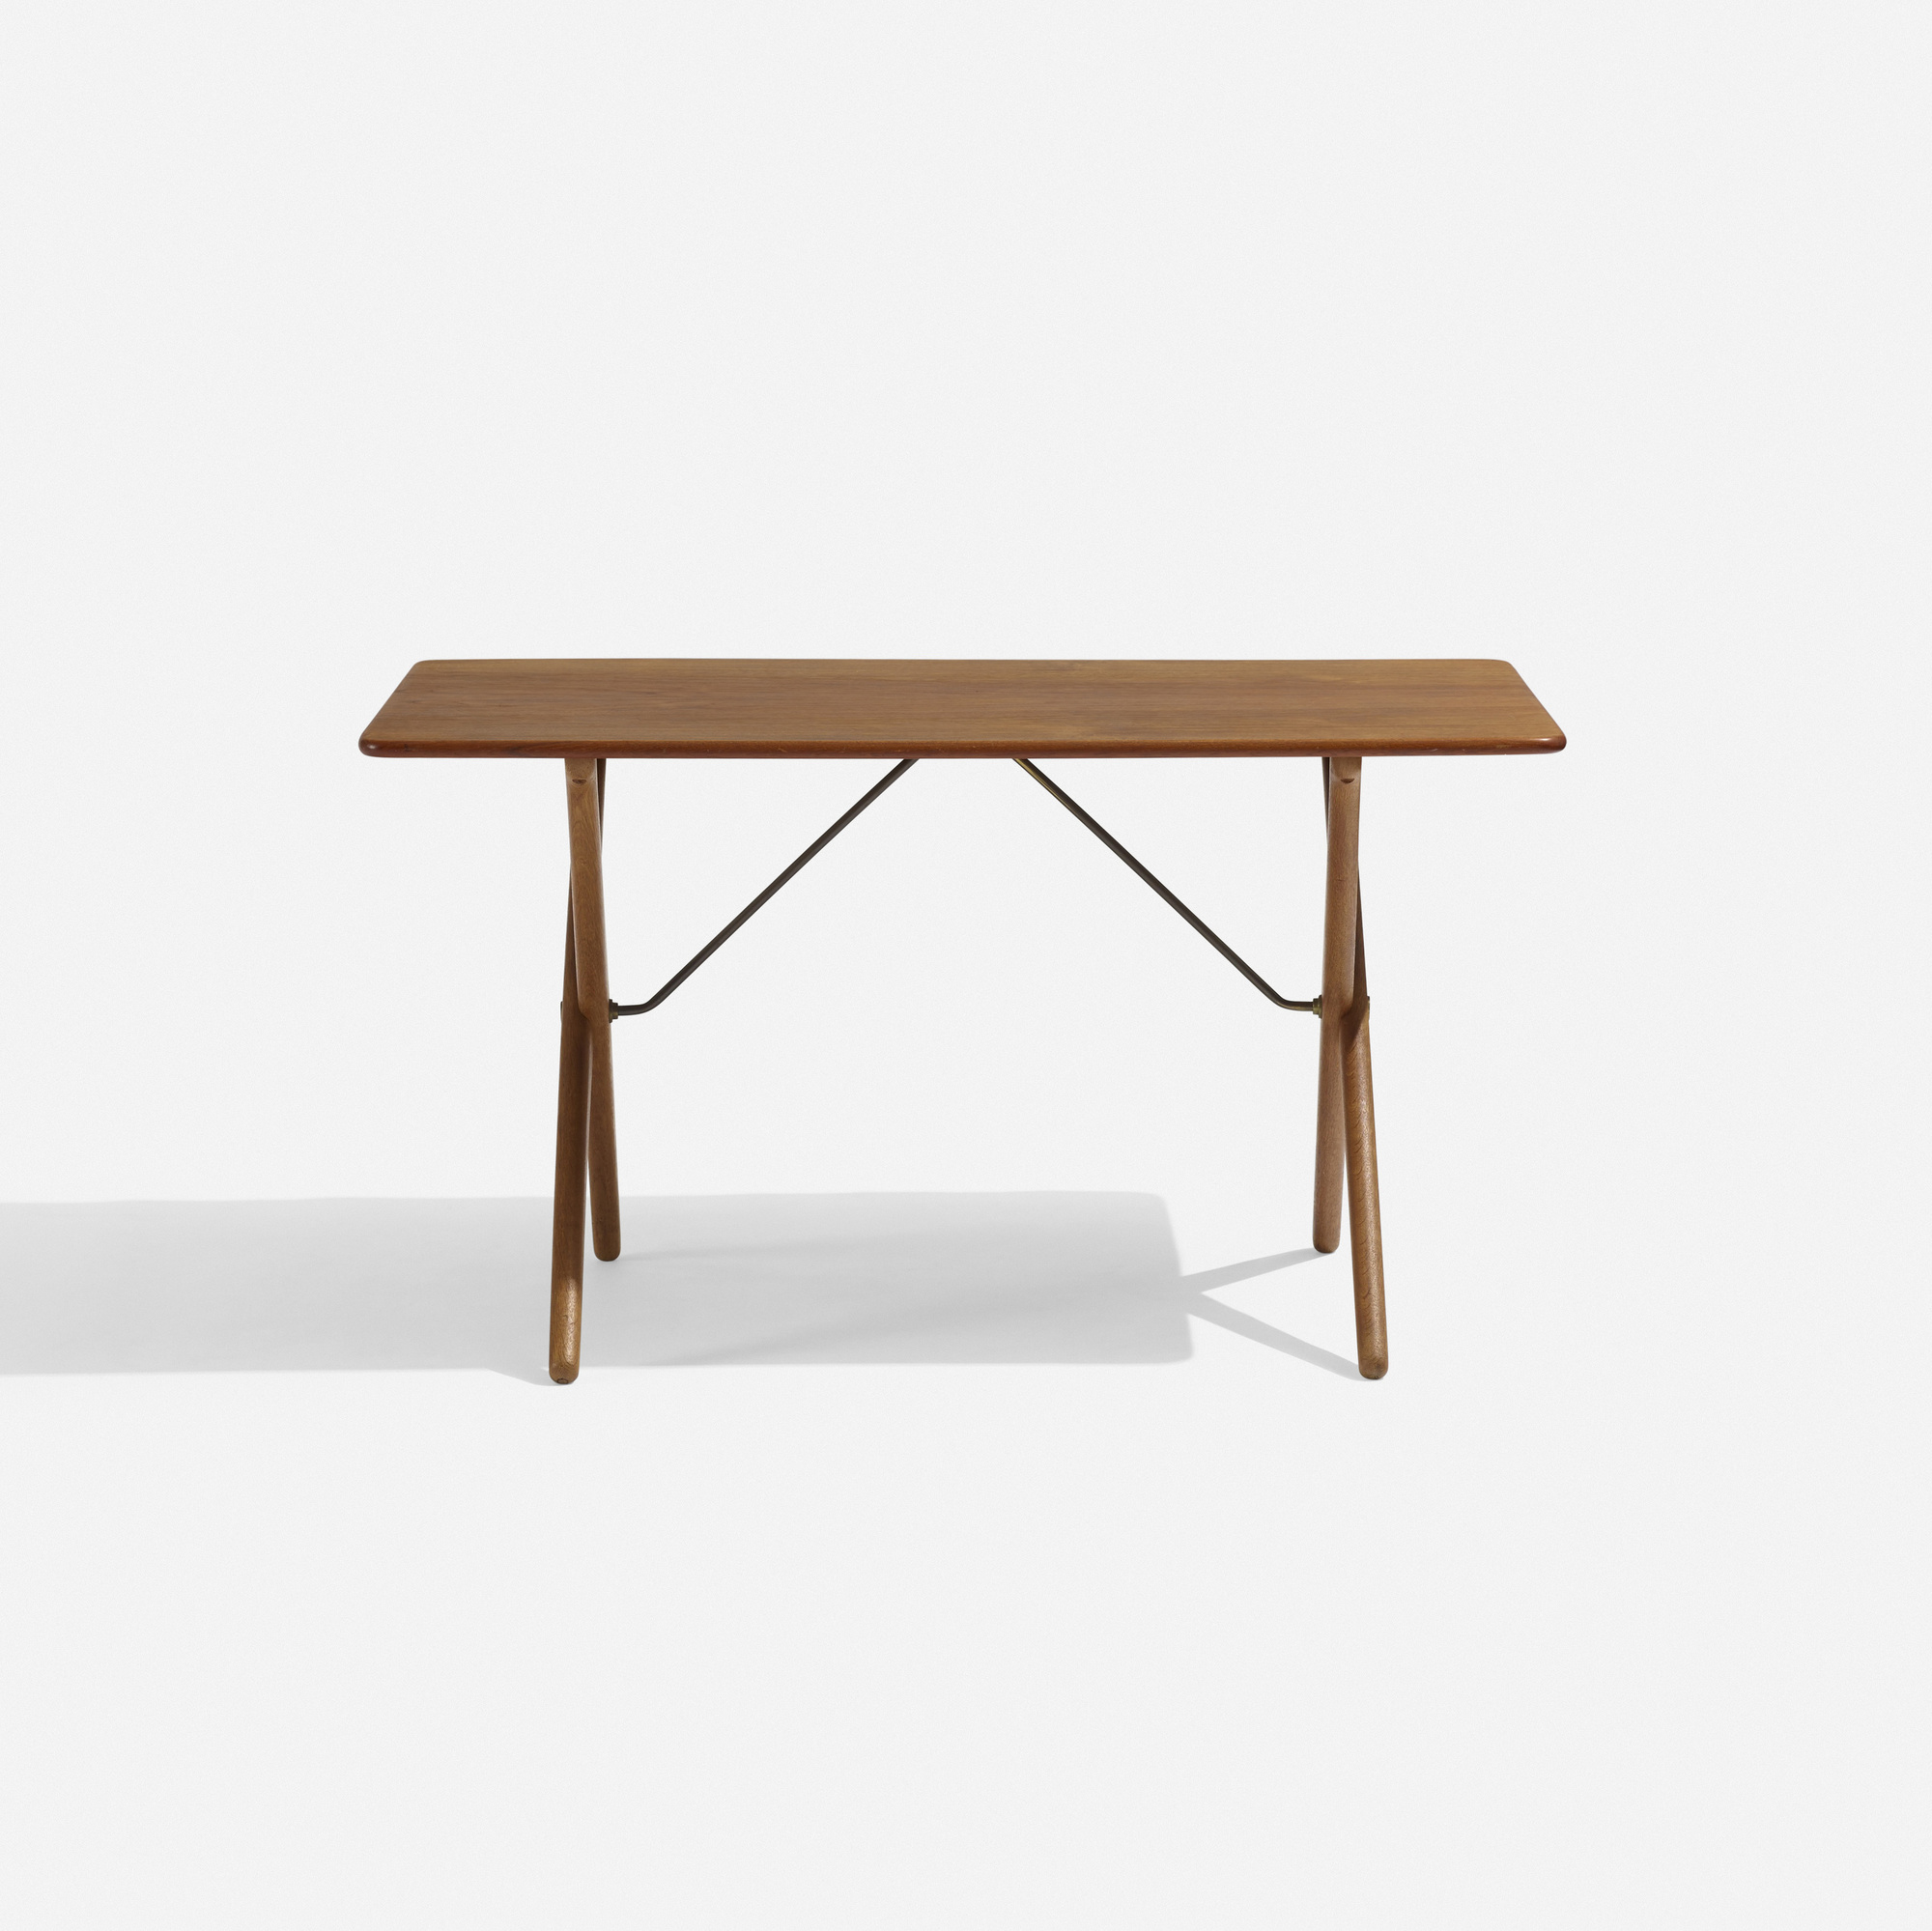 288: Hans J. Wegner / occasional table (2 of 3)